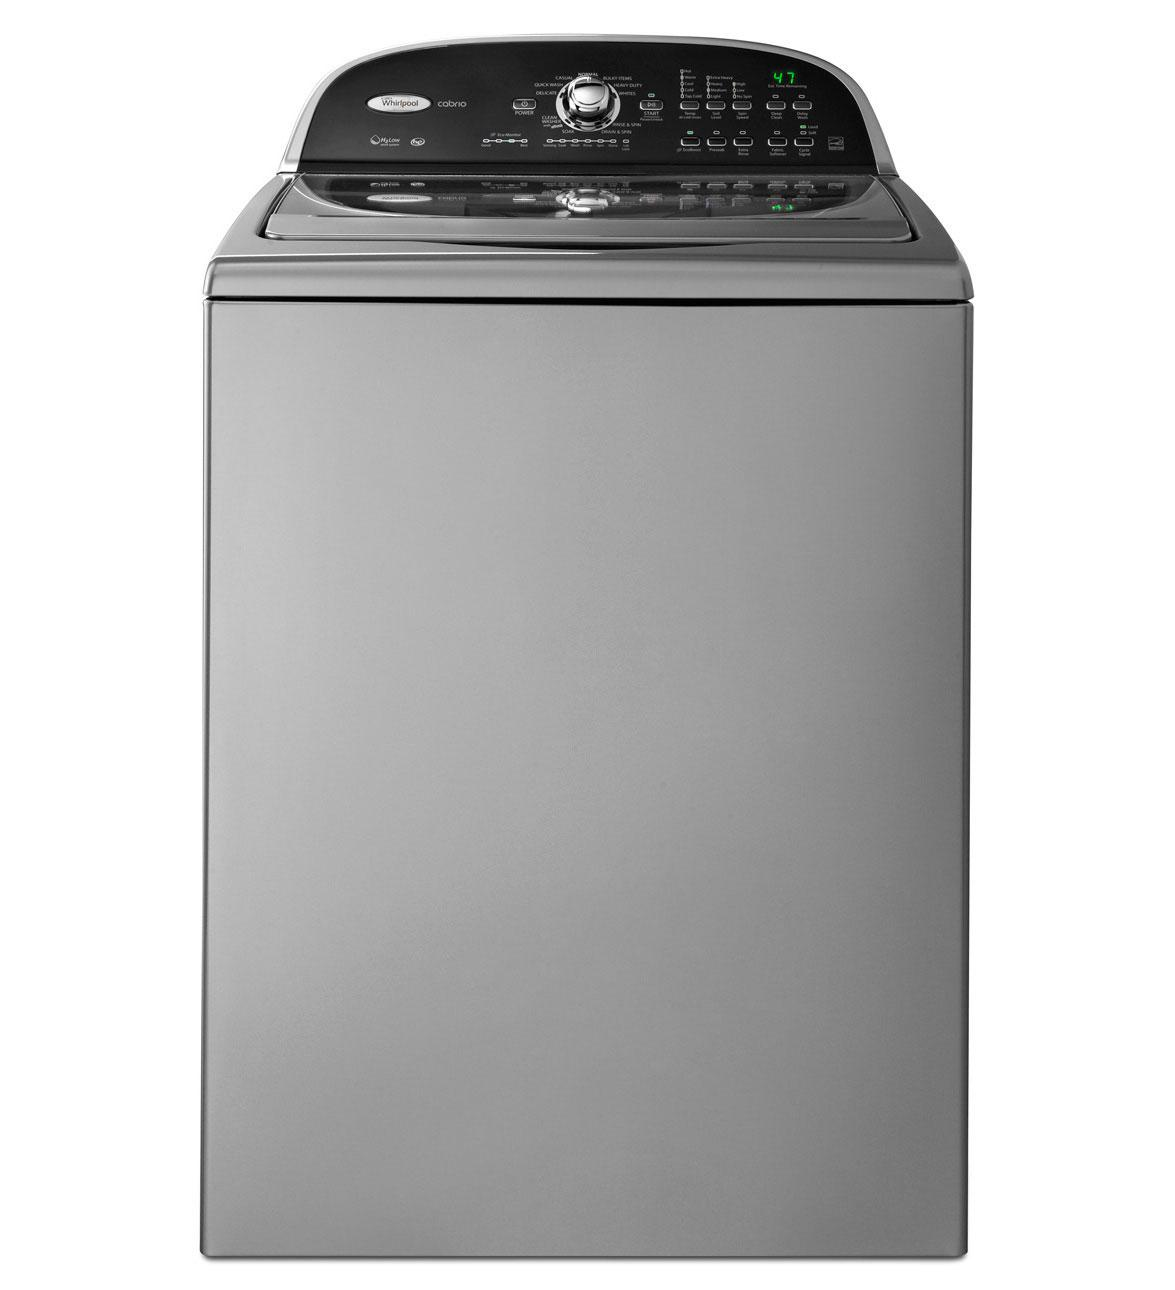 Whirlpool WTW5700AC 3.6 Cu. Ft. Cabrio(r) Top Load Washer